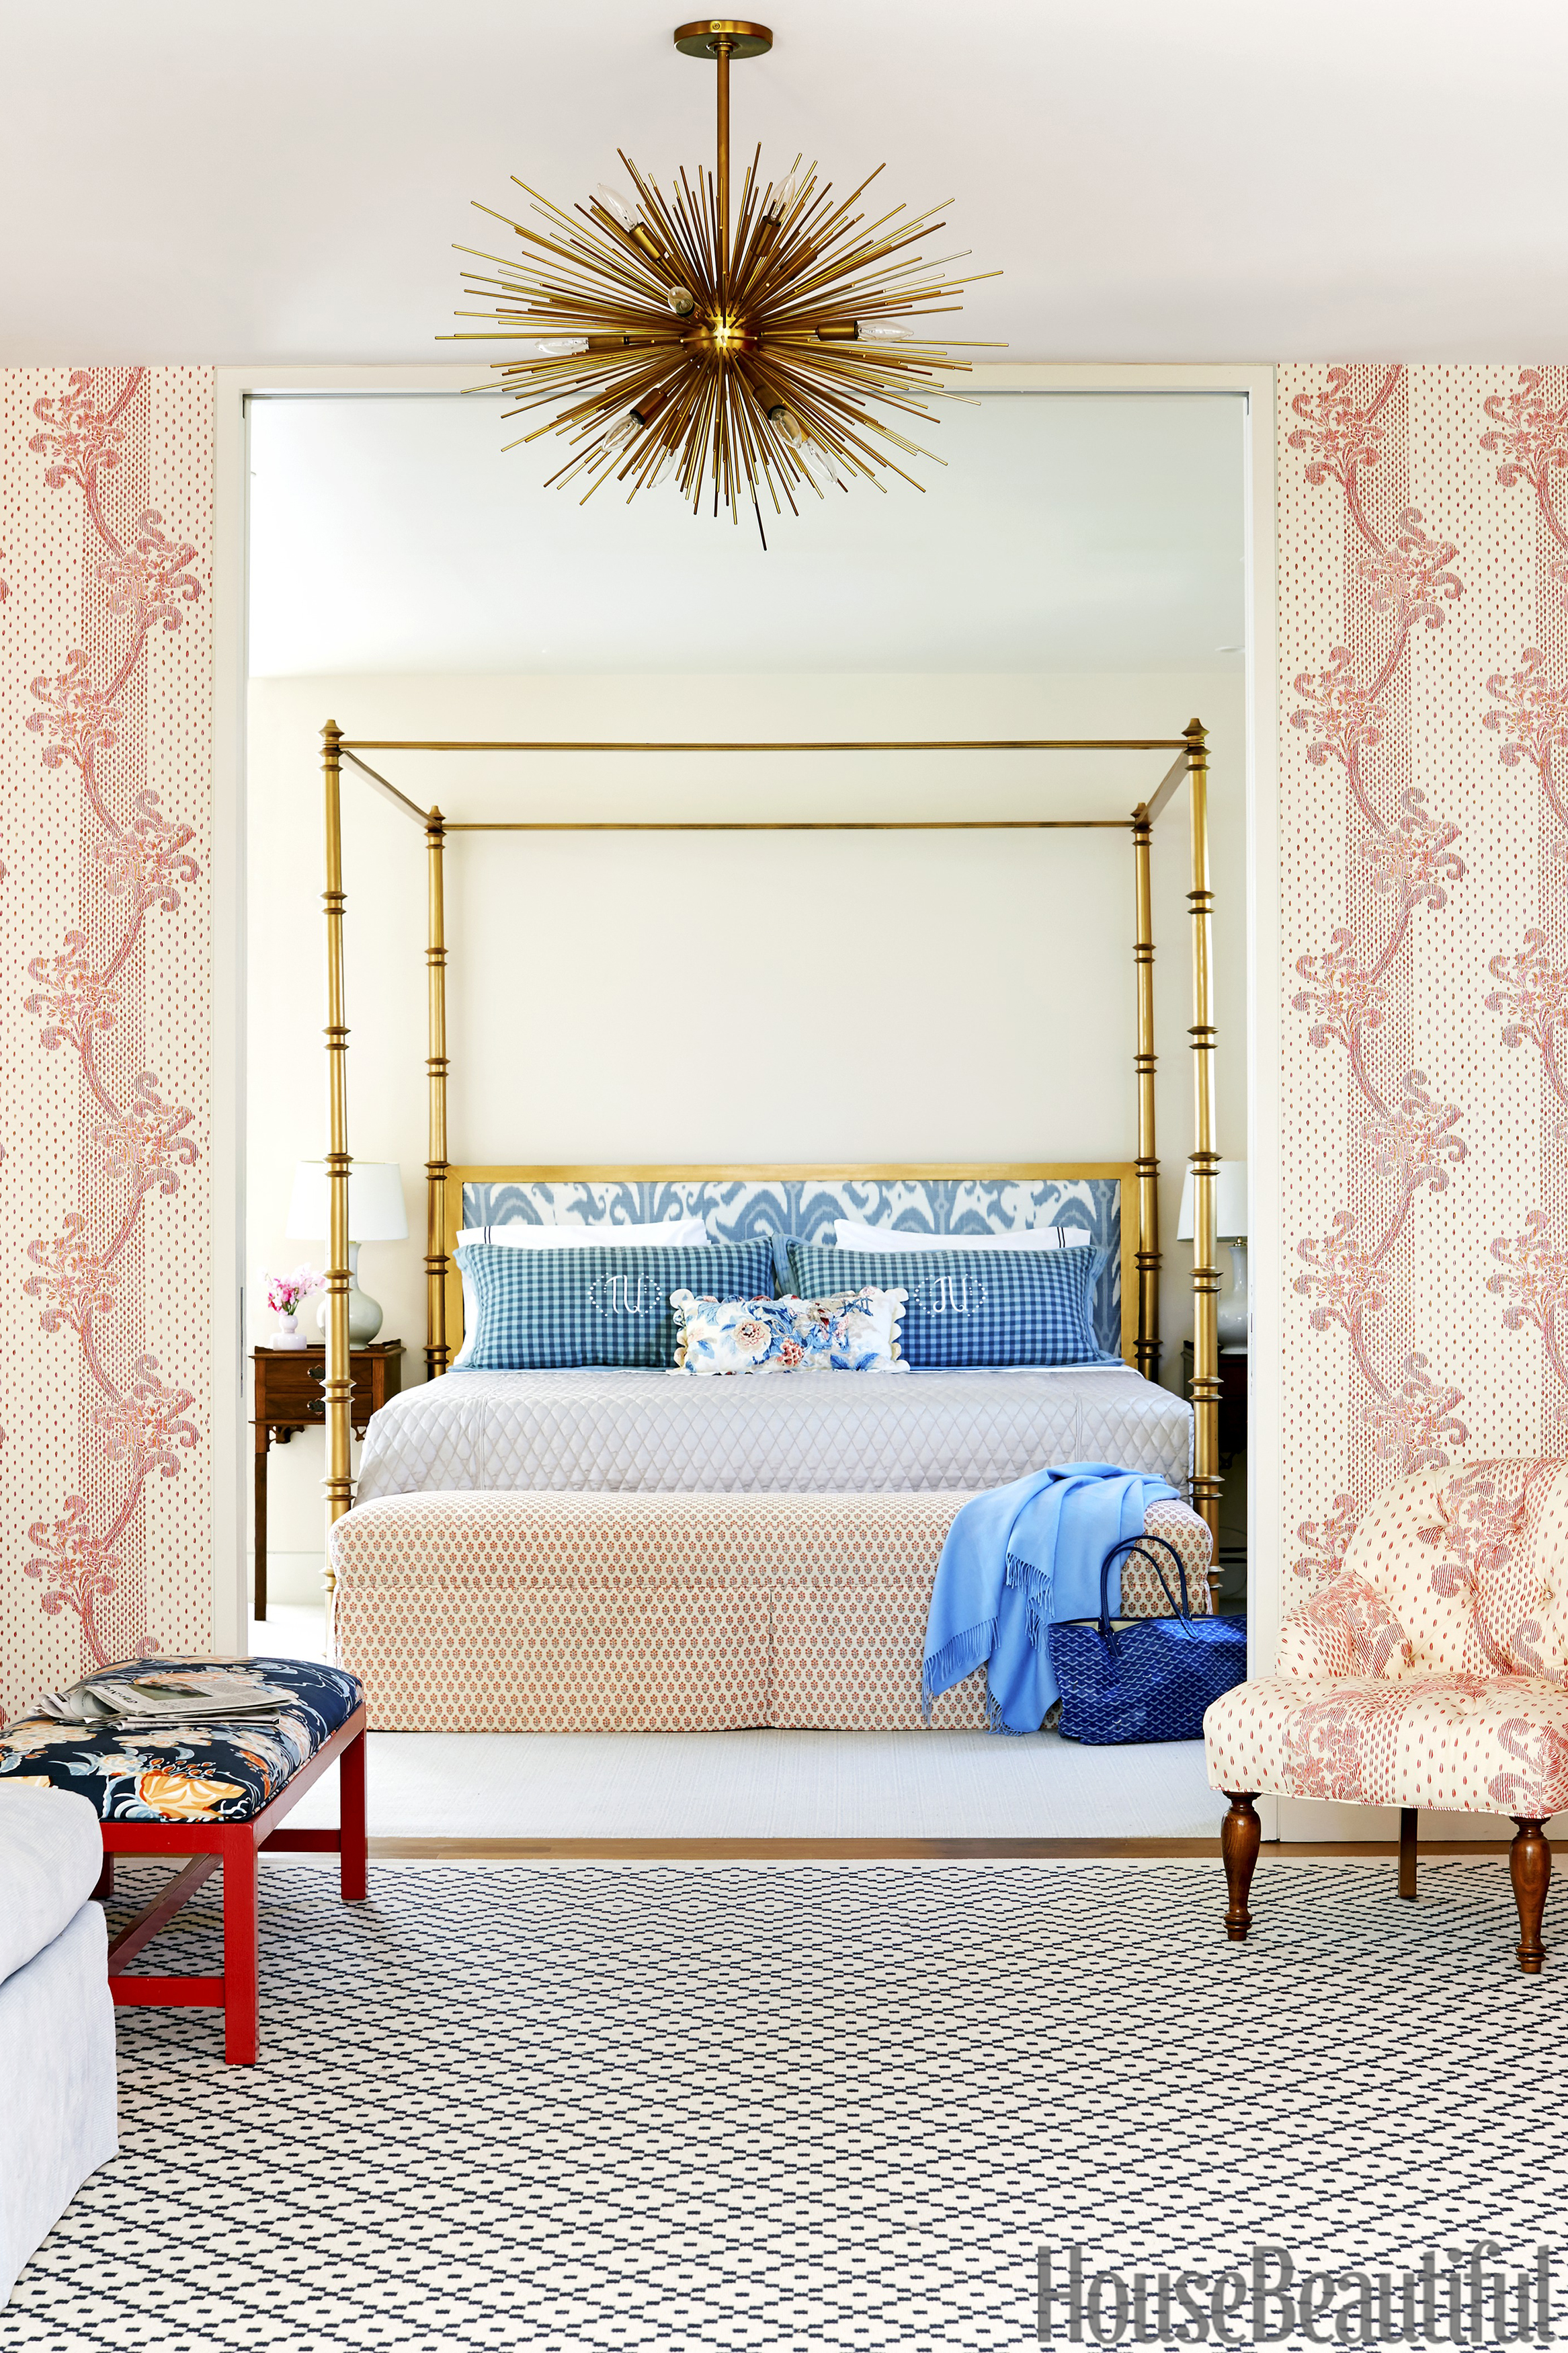 175 Stylish Bedroom Decorating Ideas - Design Pictures of ... on Beautiful Room Decor  id=96560